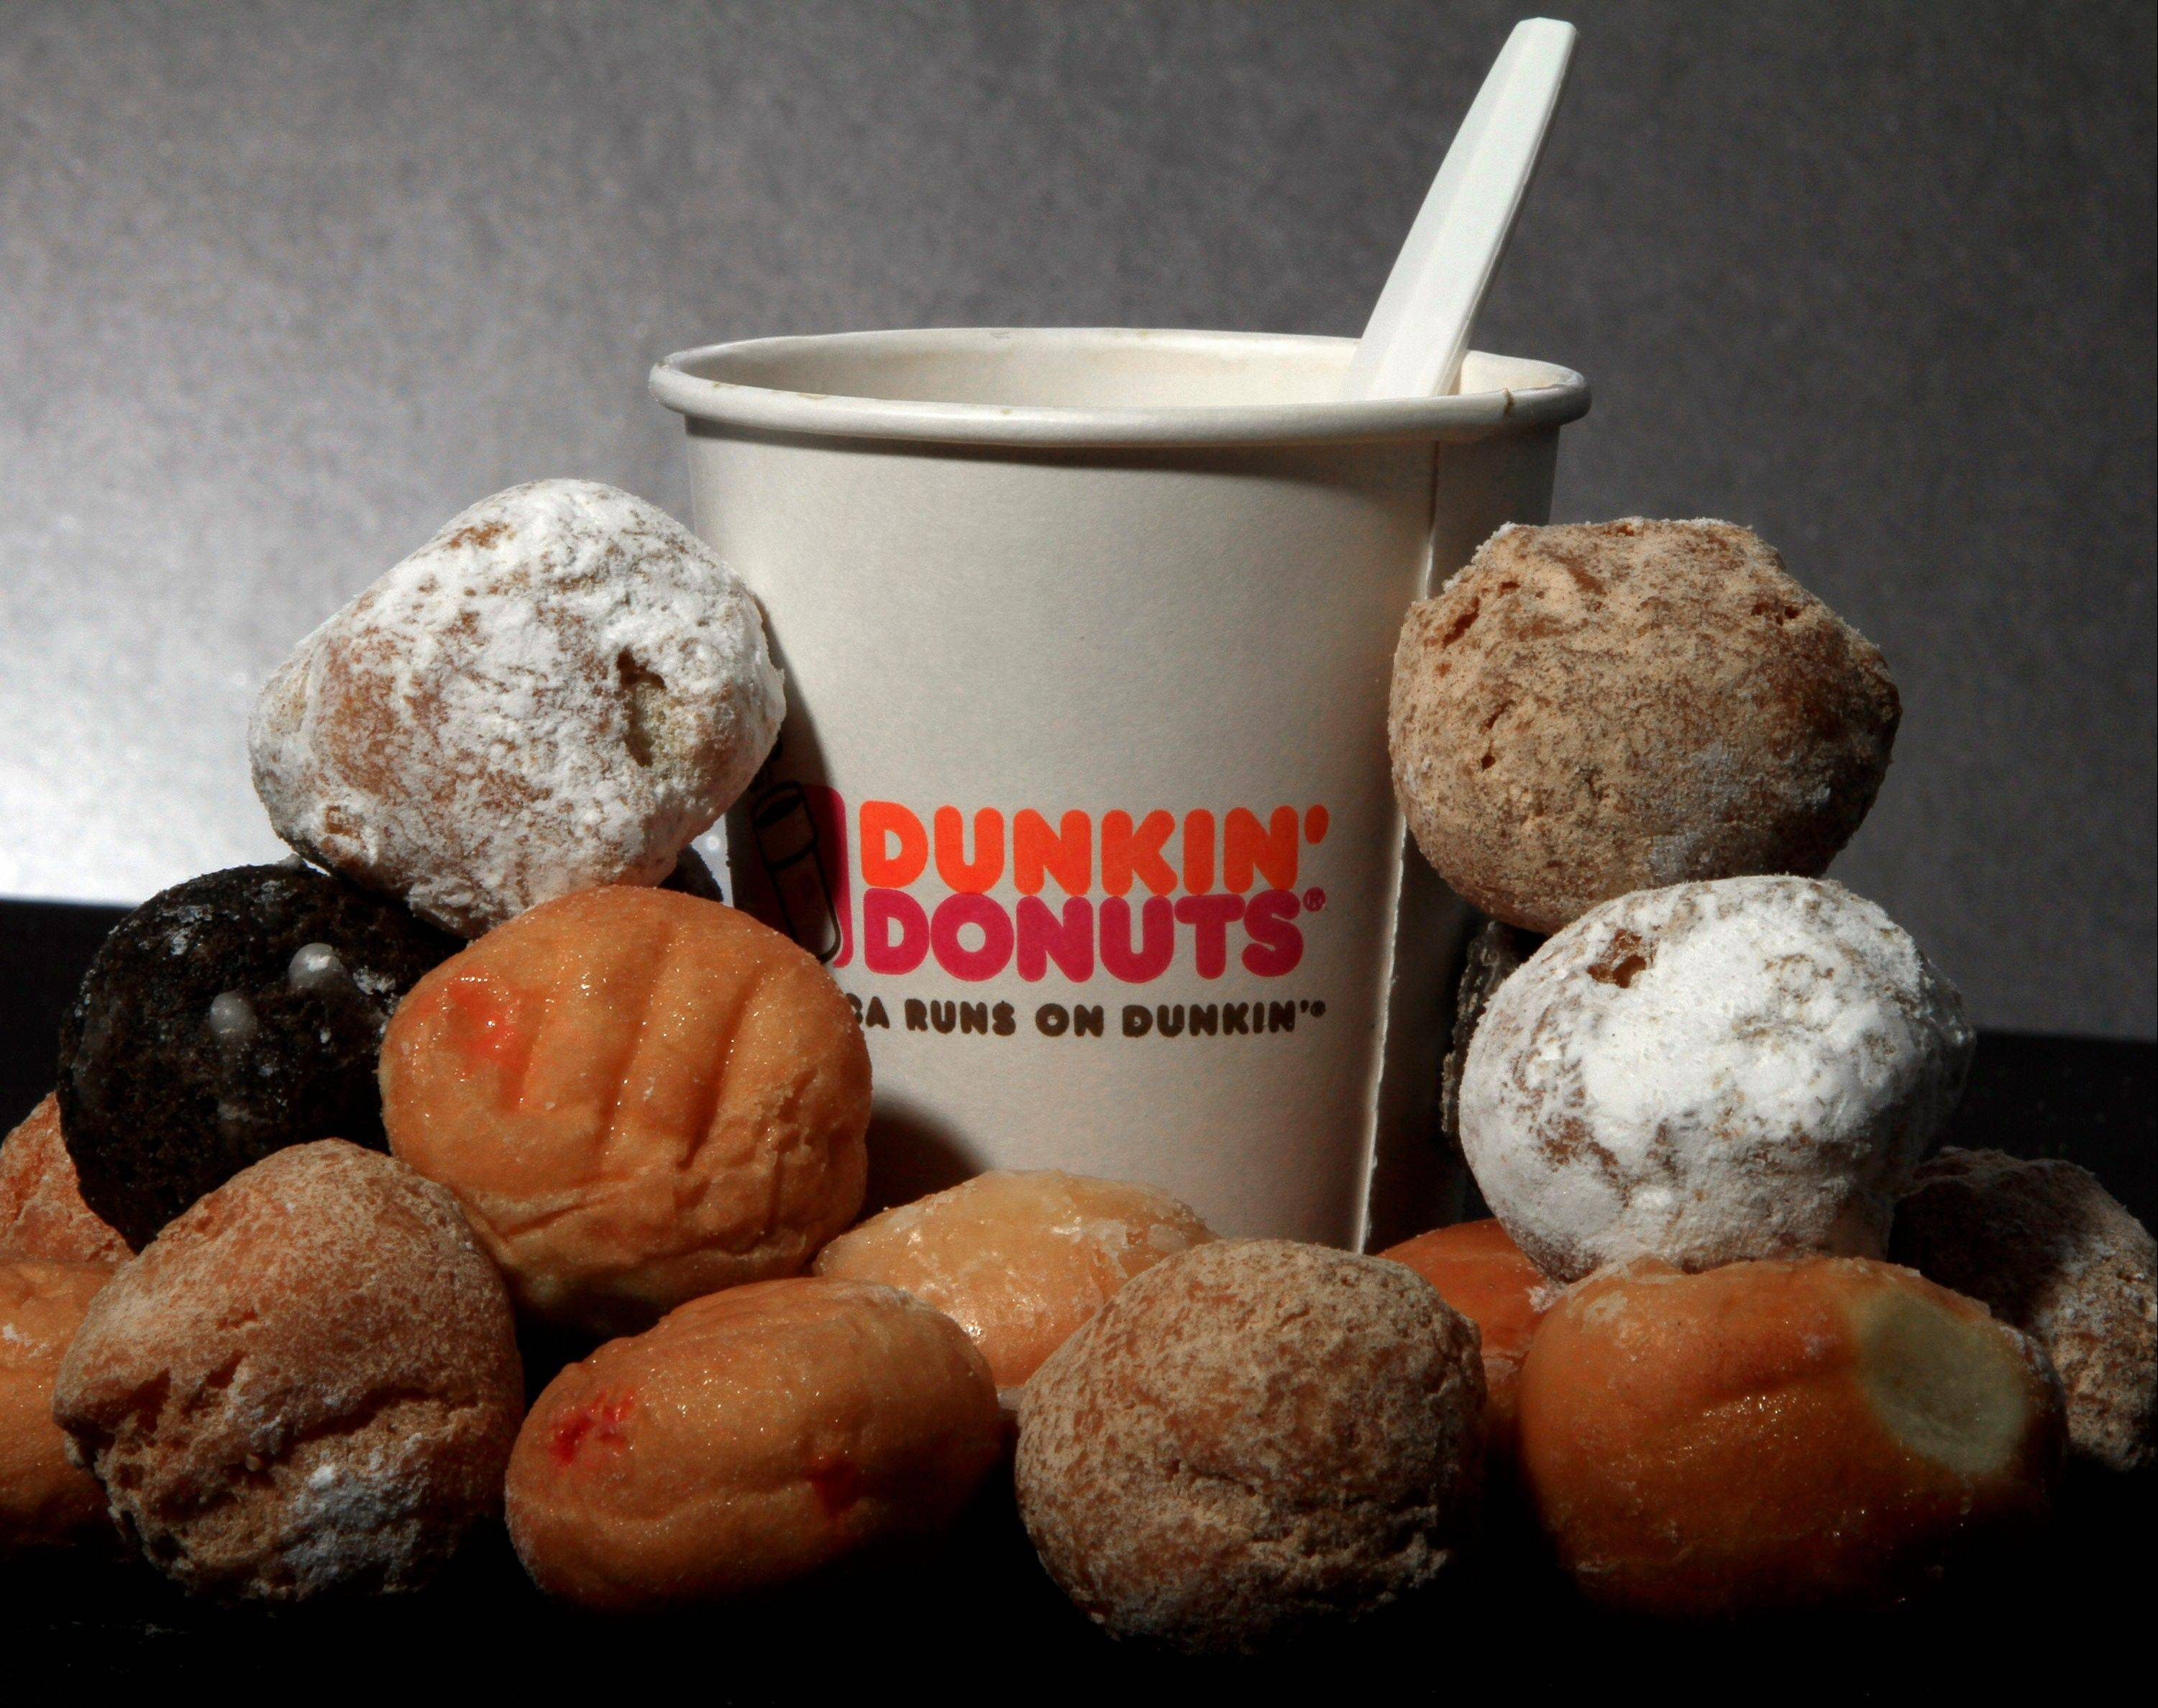 Shares of Dunkin' Brands Group Inc. shot up in trading on their first day on the Nasdaq.